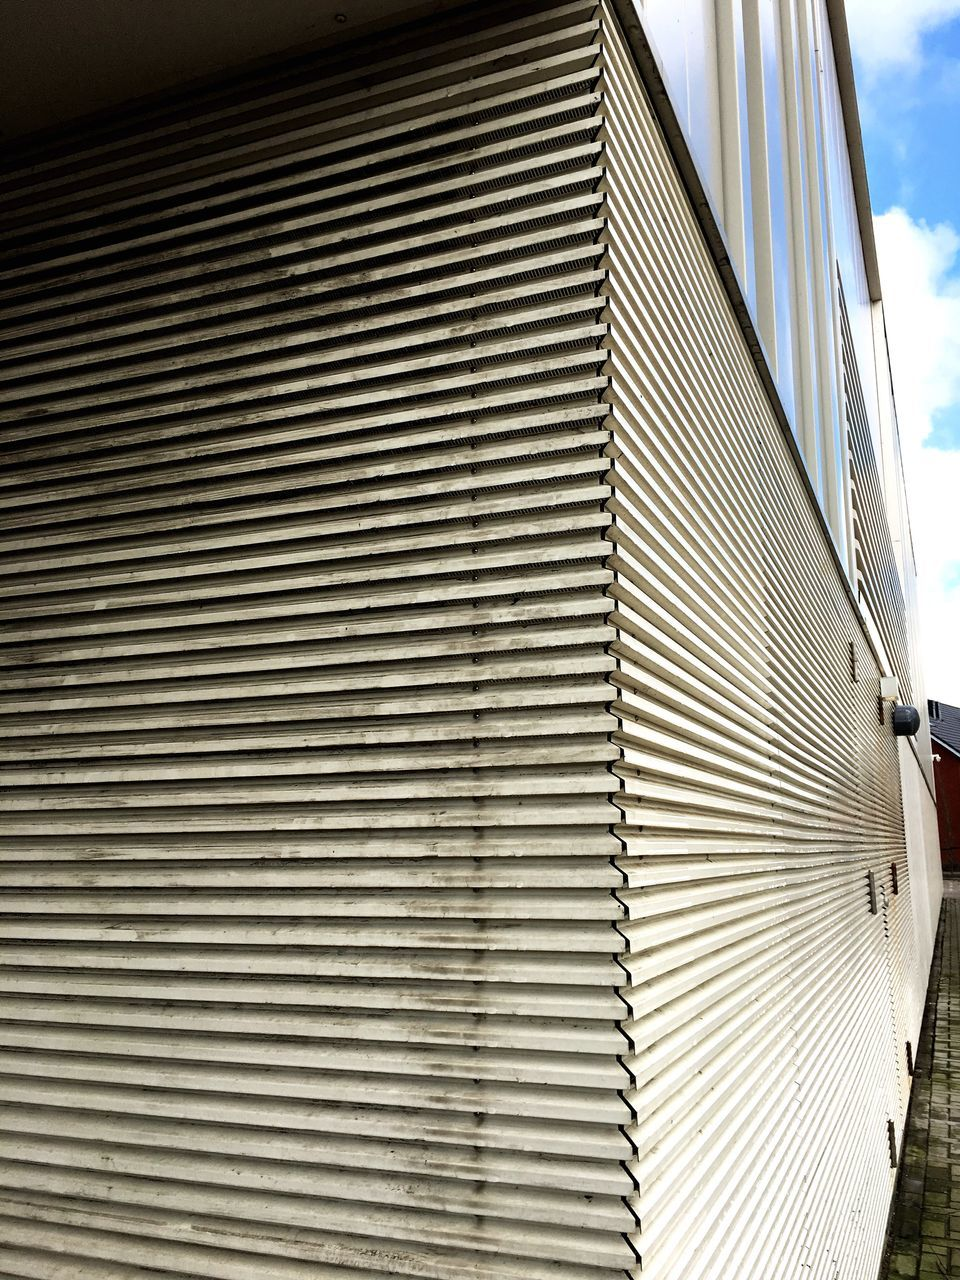 pattern, architecture, building exterior, striped, built structure, day, no people, outdoors, corrugated iron, modern, close-up, sky